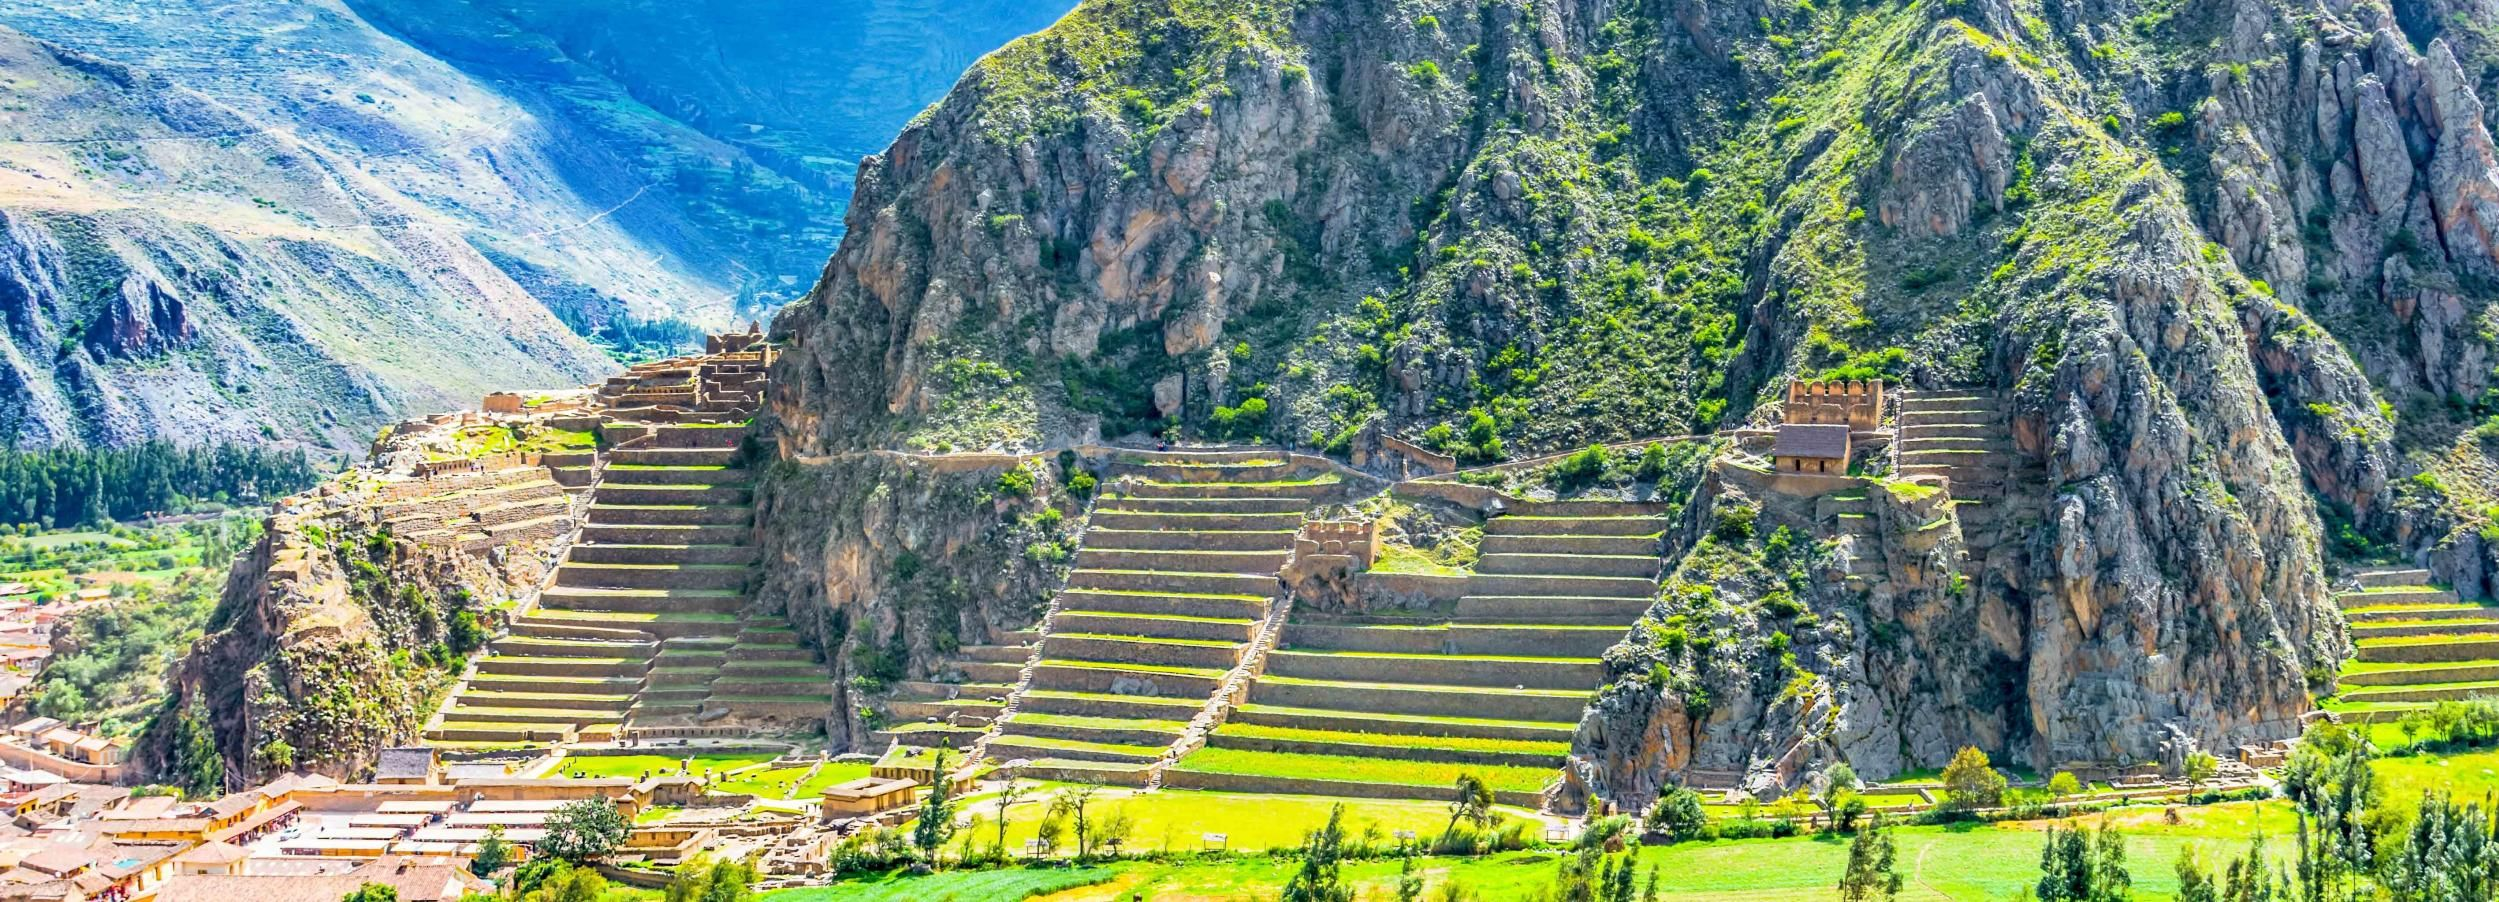 Machu Picchu: 4-Day Multi-Activity Inca Trail